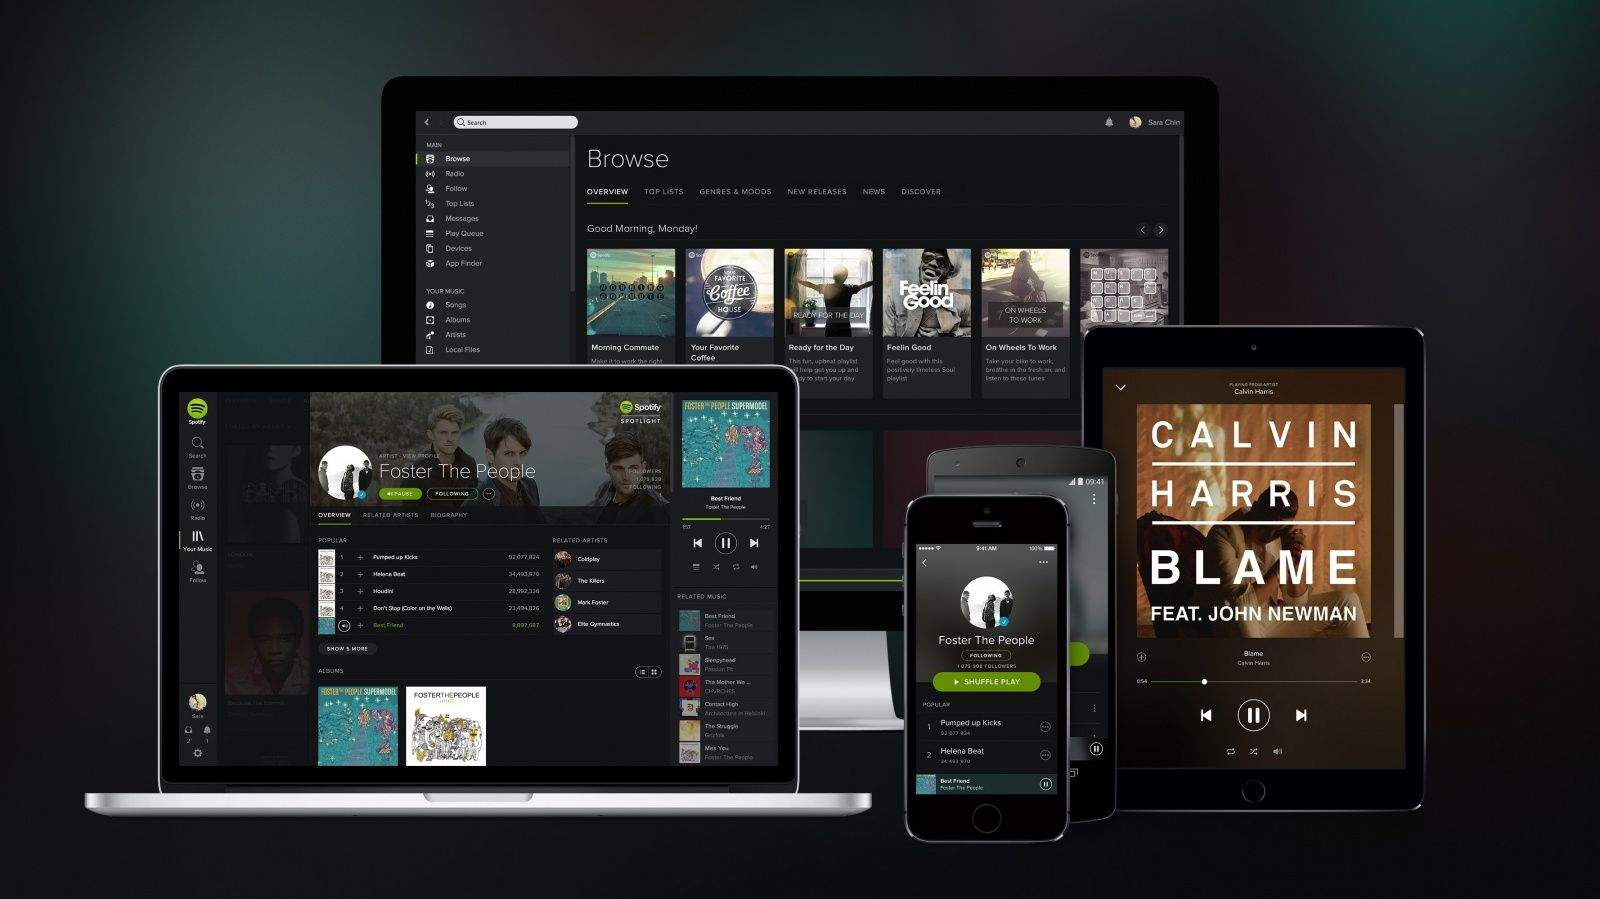 Spotify is taking what it knows about your music tastes to curate a personalized weekly playlist.